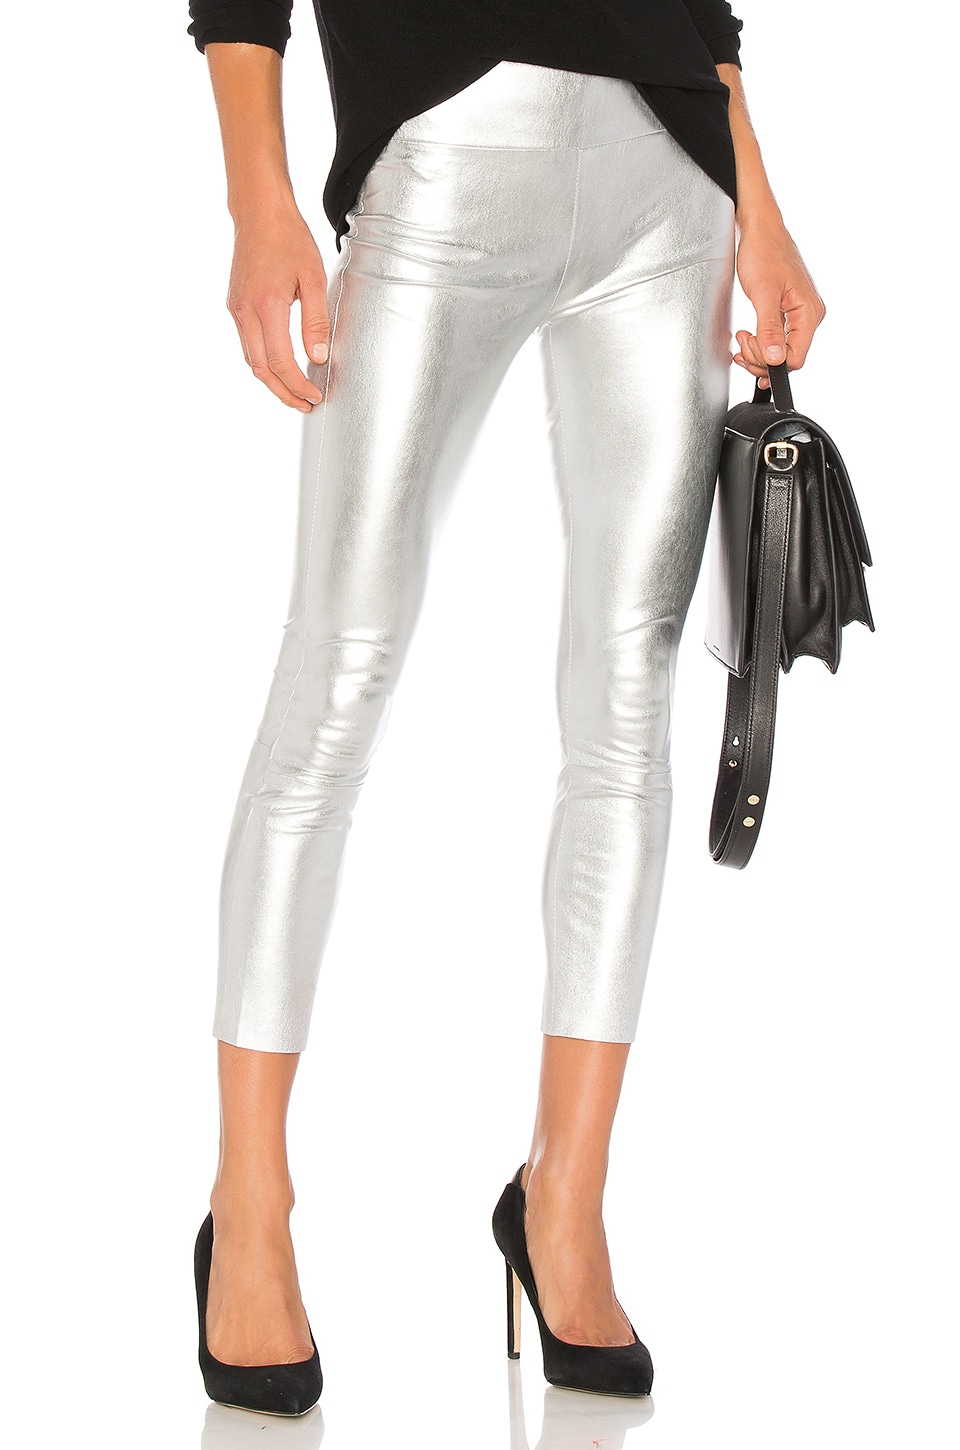 SPRWMN High Waist 3/4 Legging in Silver